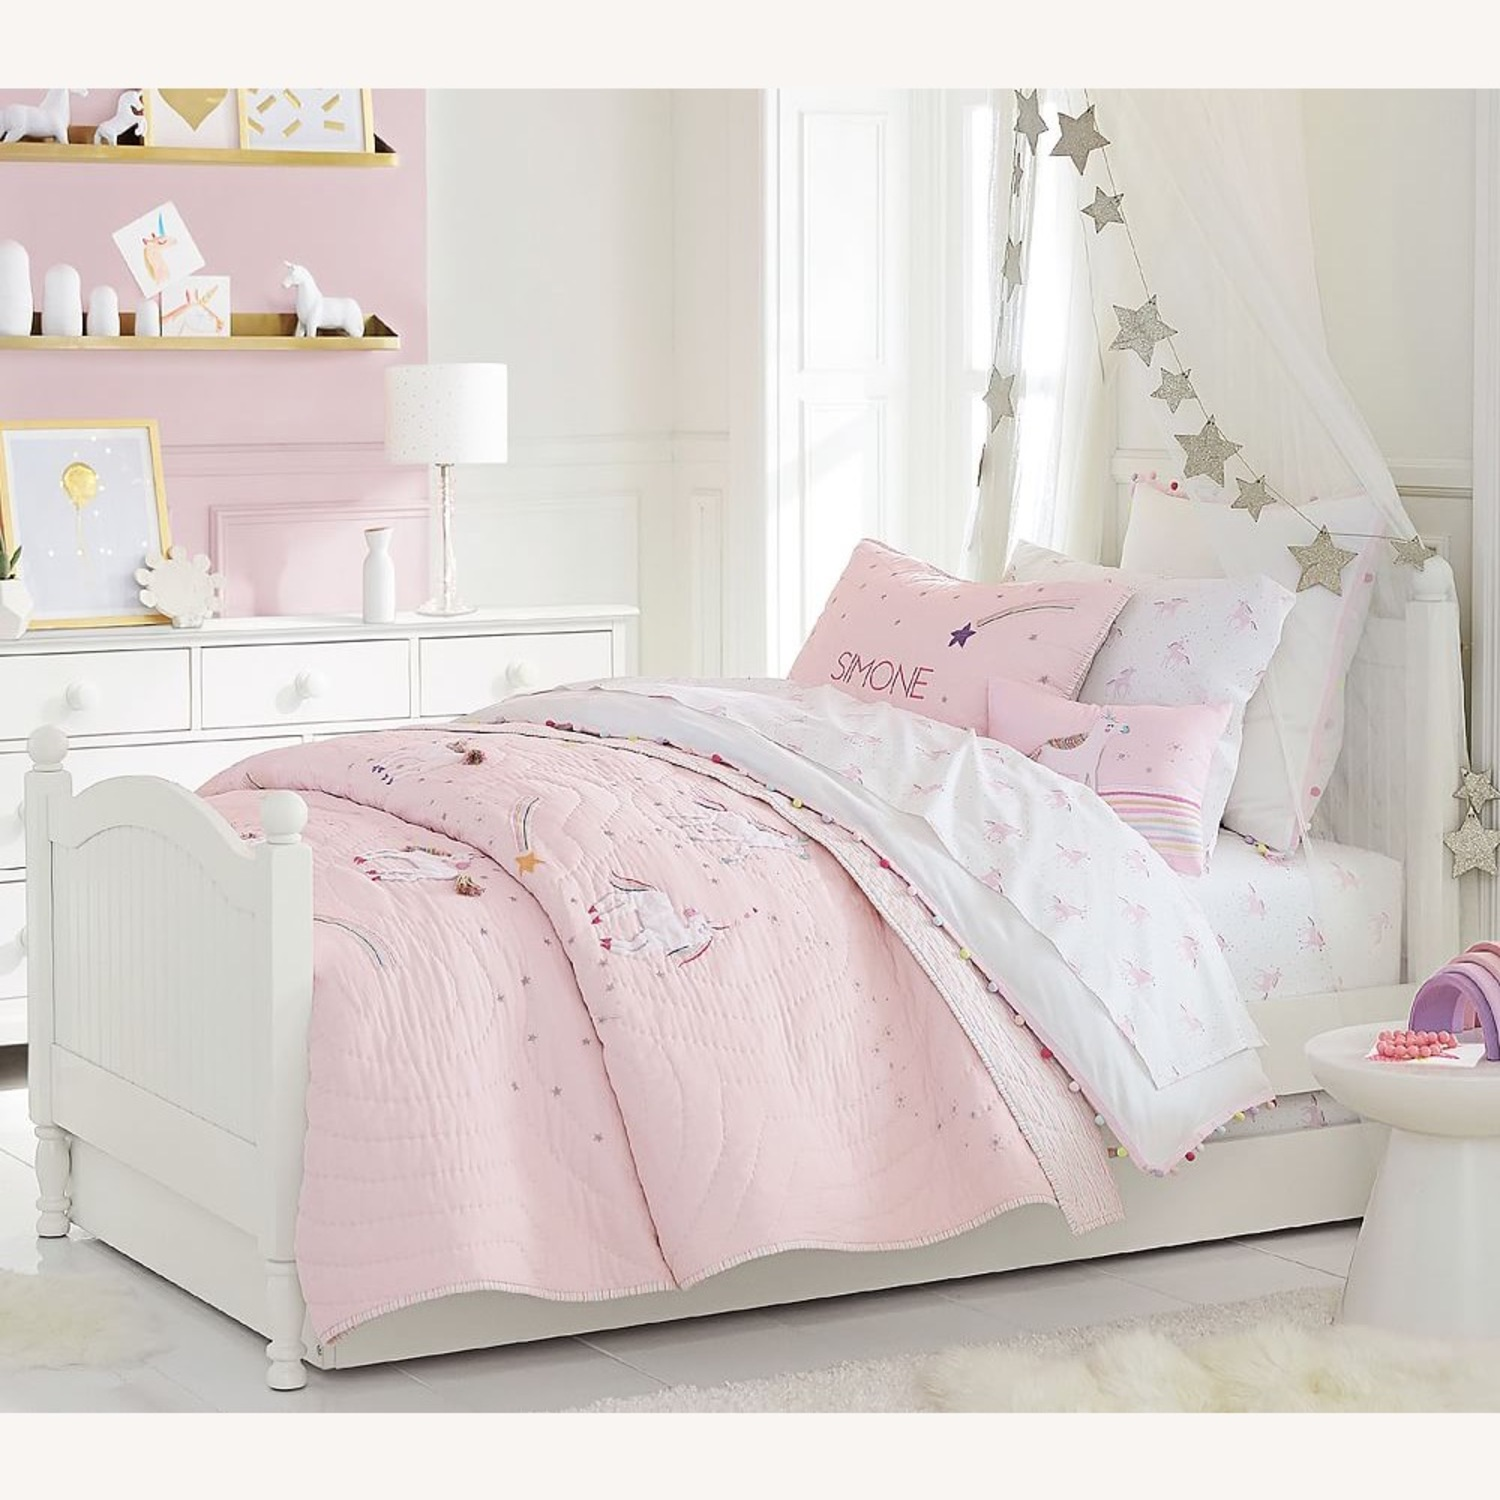 Pottery barn kids bed with trundle - image-2